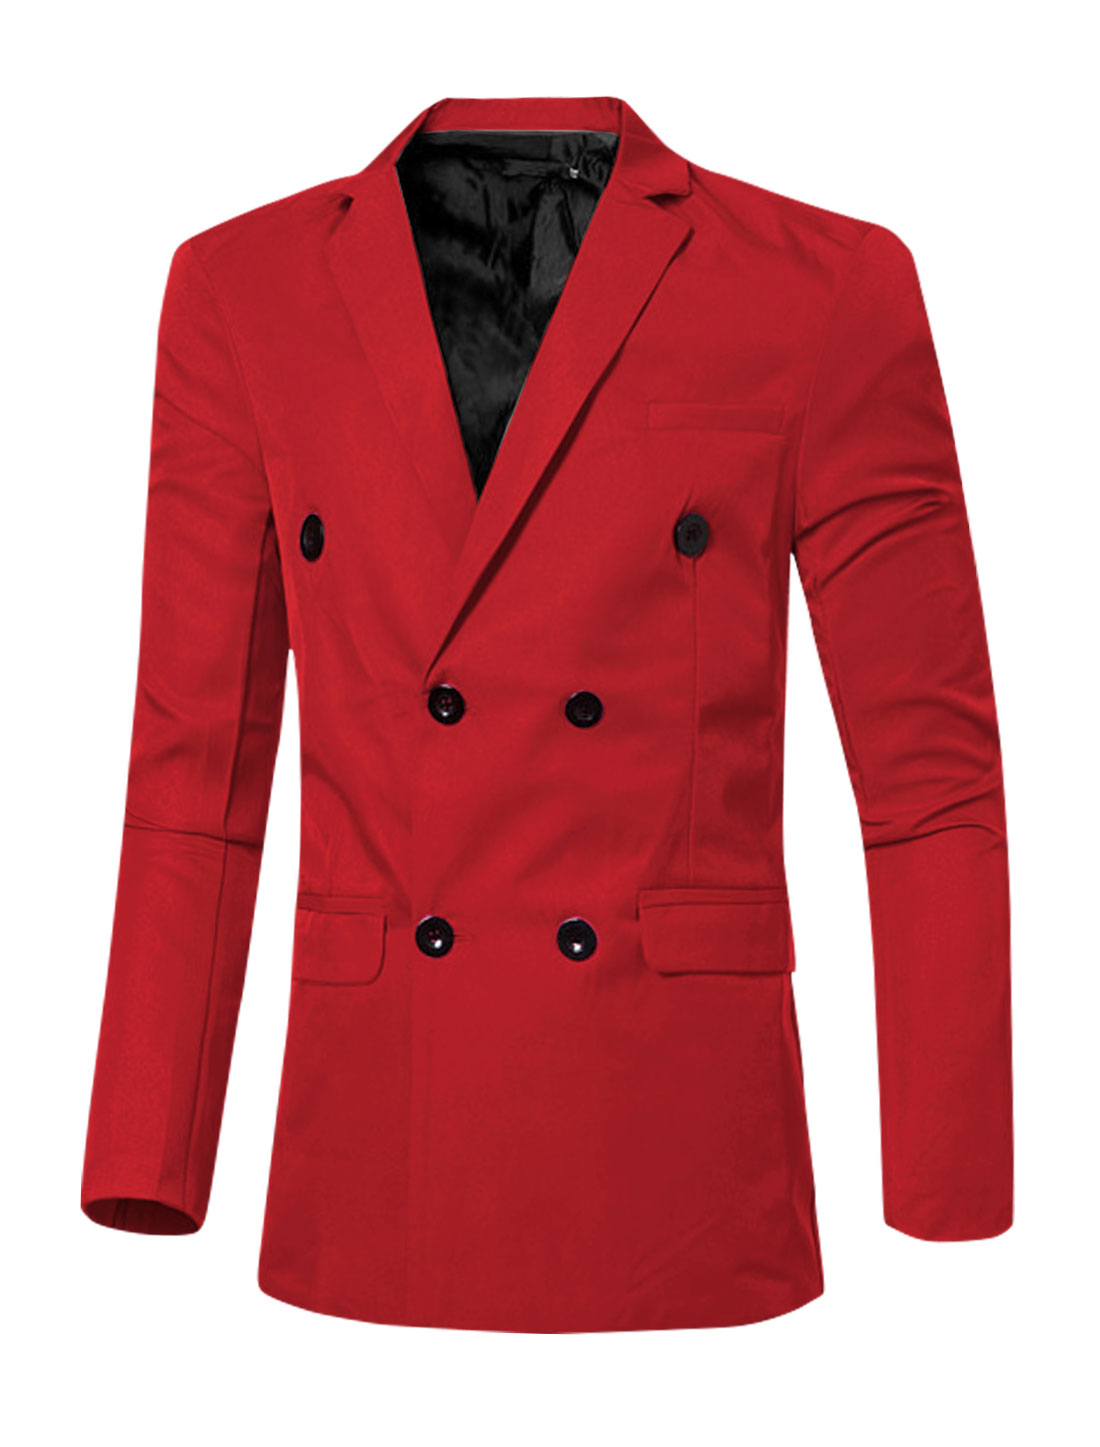 Men Notched Lapel Flap Pockets Double Breasted Blazer Red S